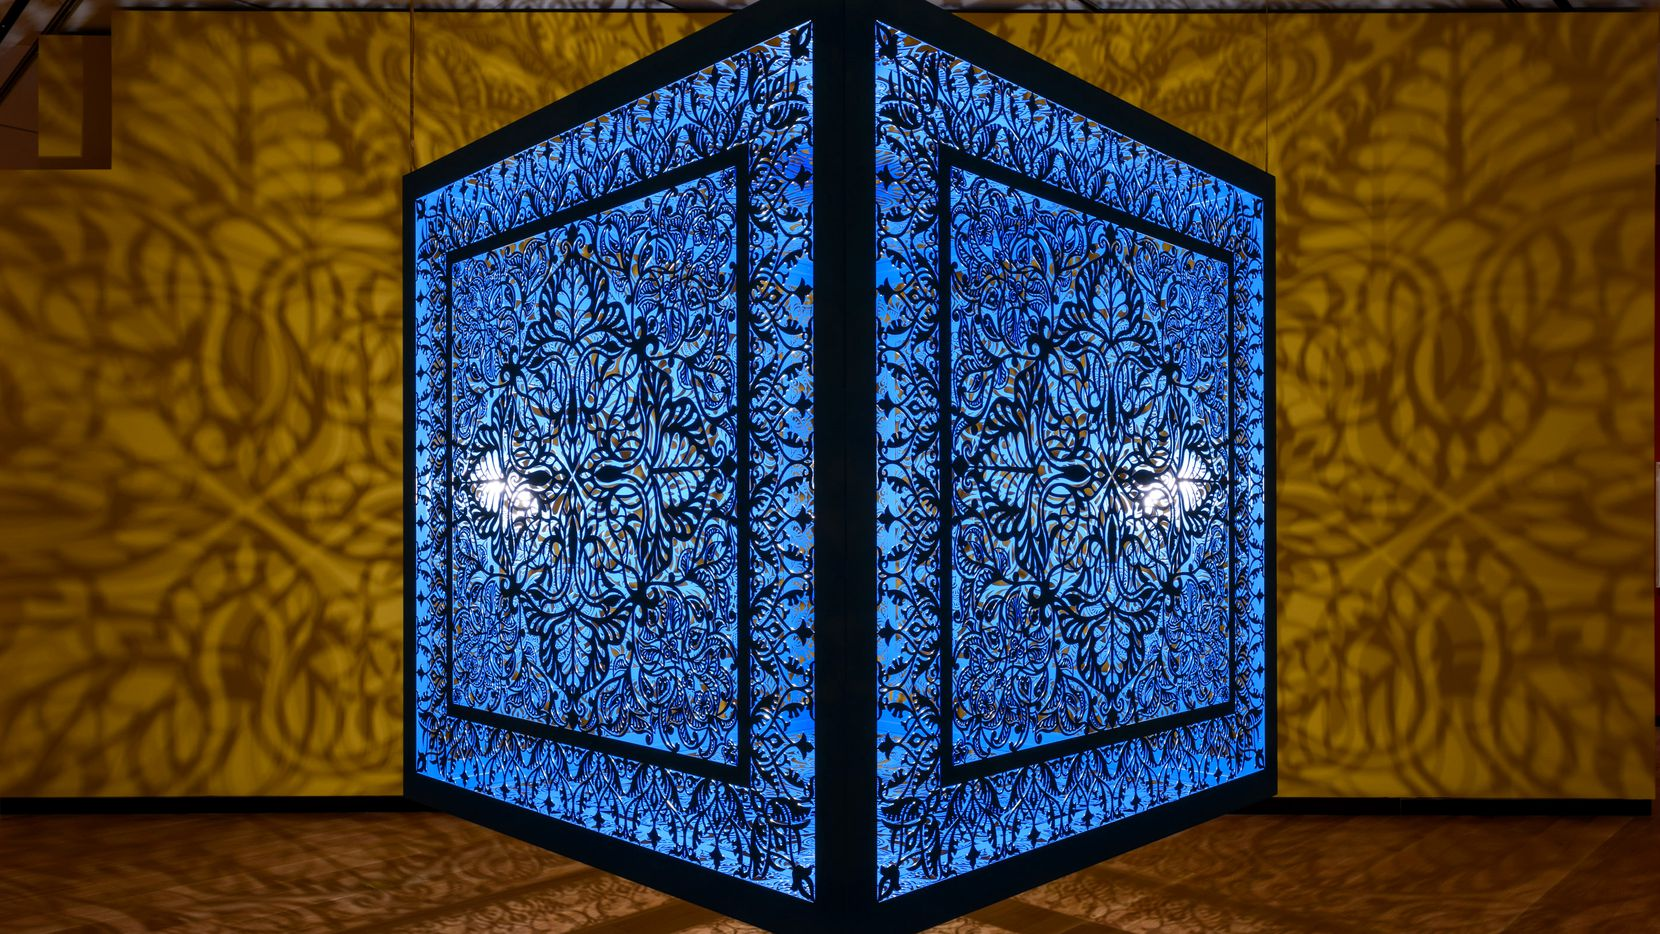 """'A Beautiful Despair (Cube),' 2021, laser cut, lacquered steel turquoise at the exhibition """"Anila Quayyum Agha: A Beautiful Despair"""" at the Amon Carter Museum of American Art through January 9, 2022."""